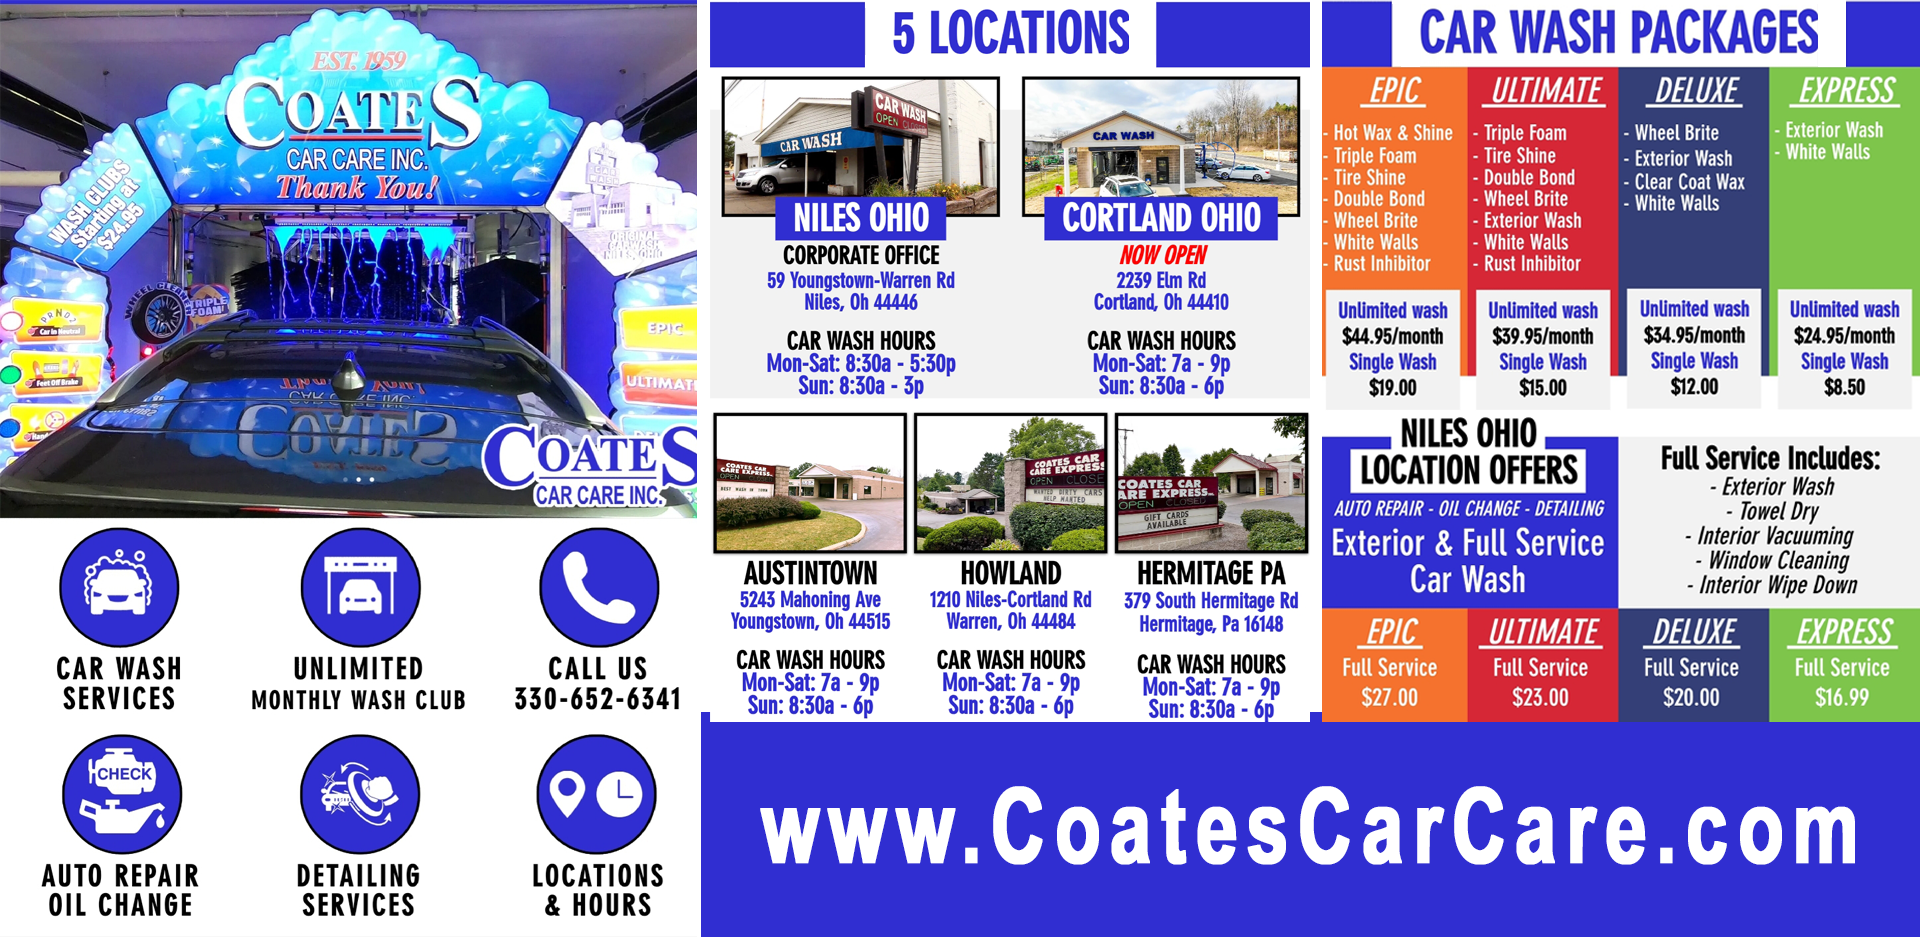 Coates Car Care Inc Car Wash Auto Repair Detailing